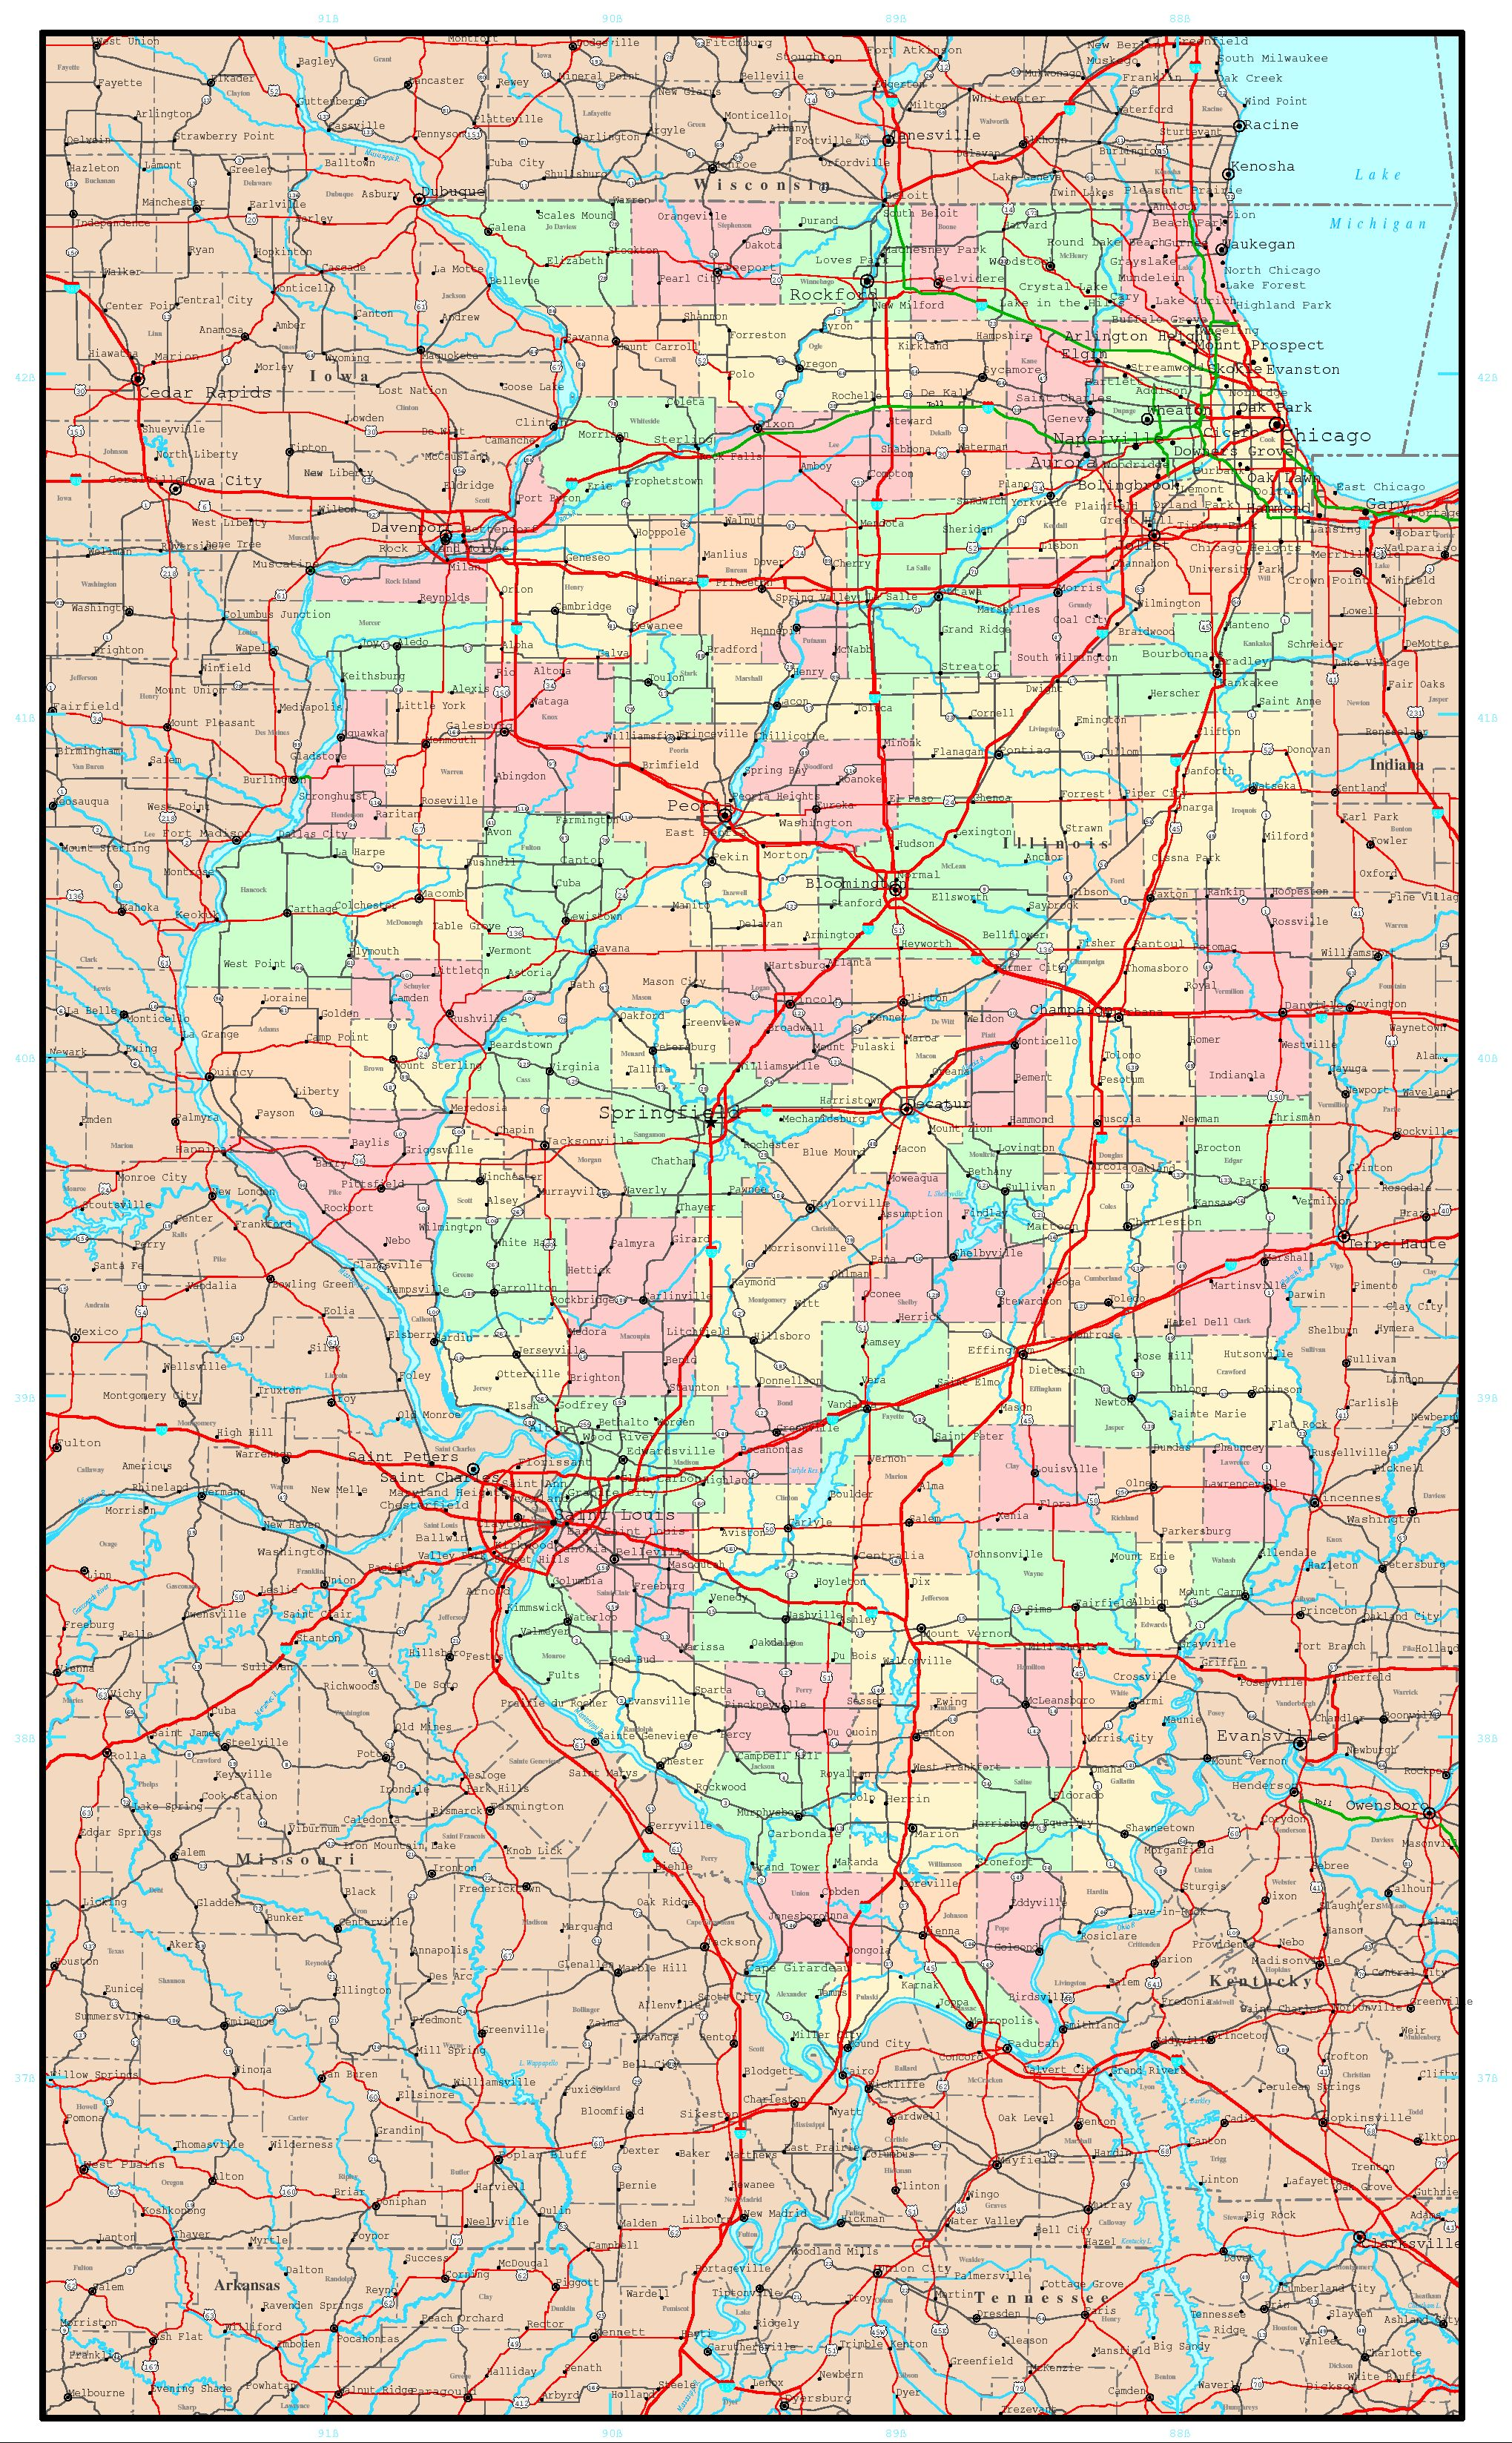 Illinois Political Map - Map of the state of illinois